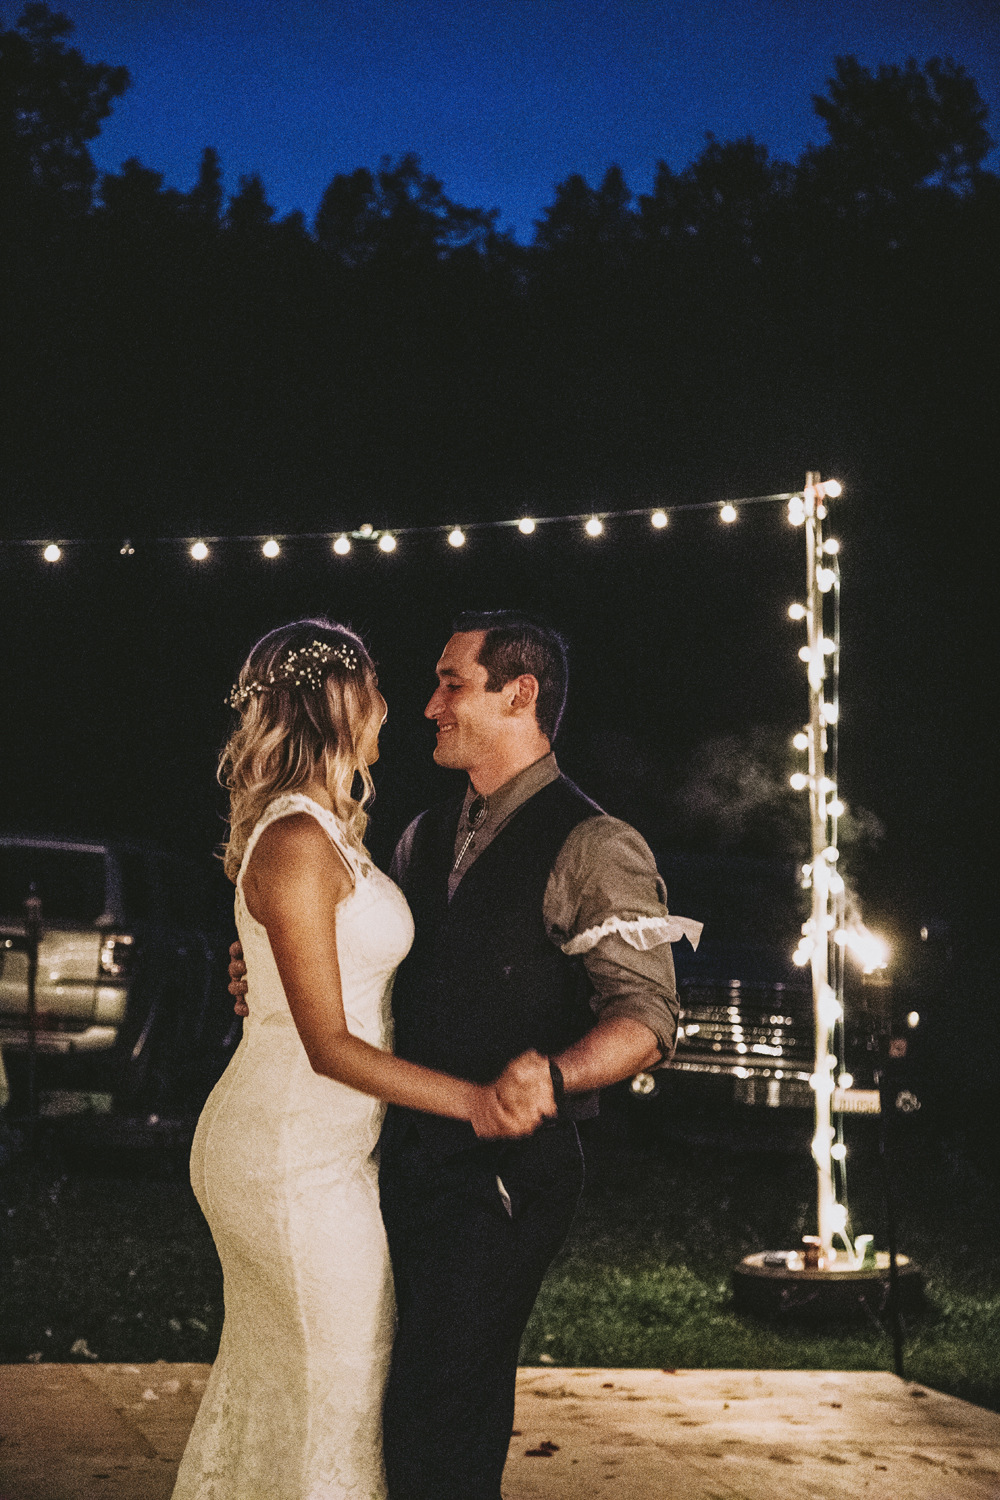 Rustic-Forest-Country-Wedding-Chico-CARustic-Forest-Country-Wedding-Chico-CA3-2.jpg